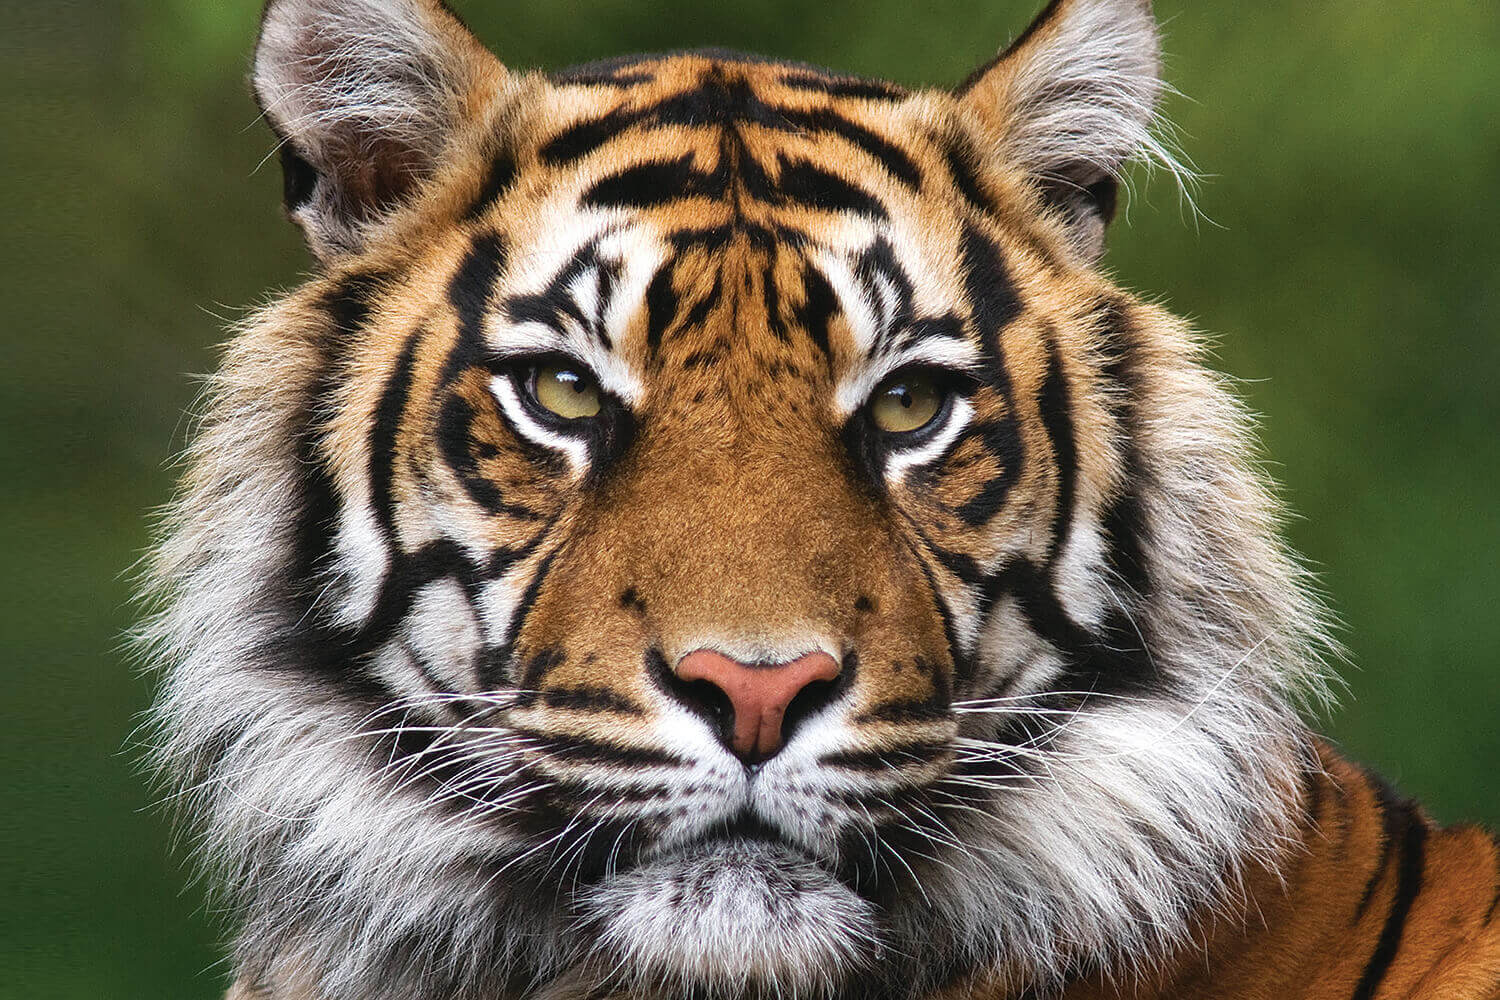 How many tigers in Nepal?